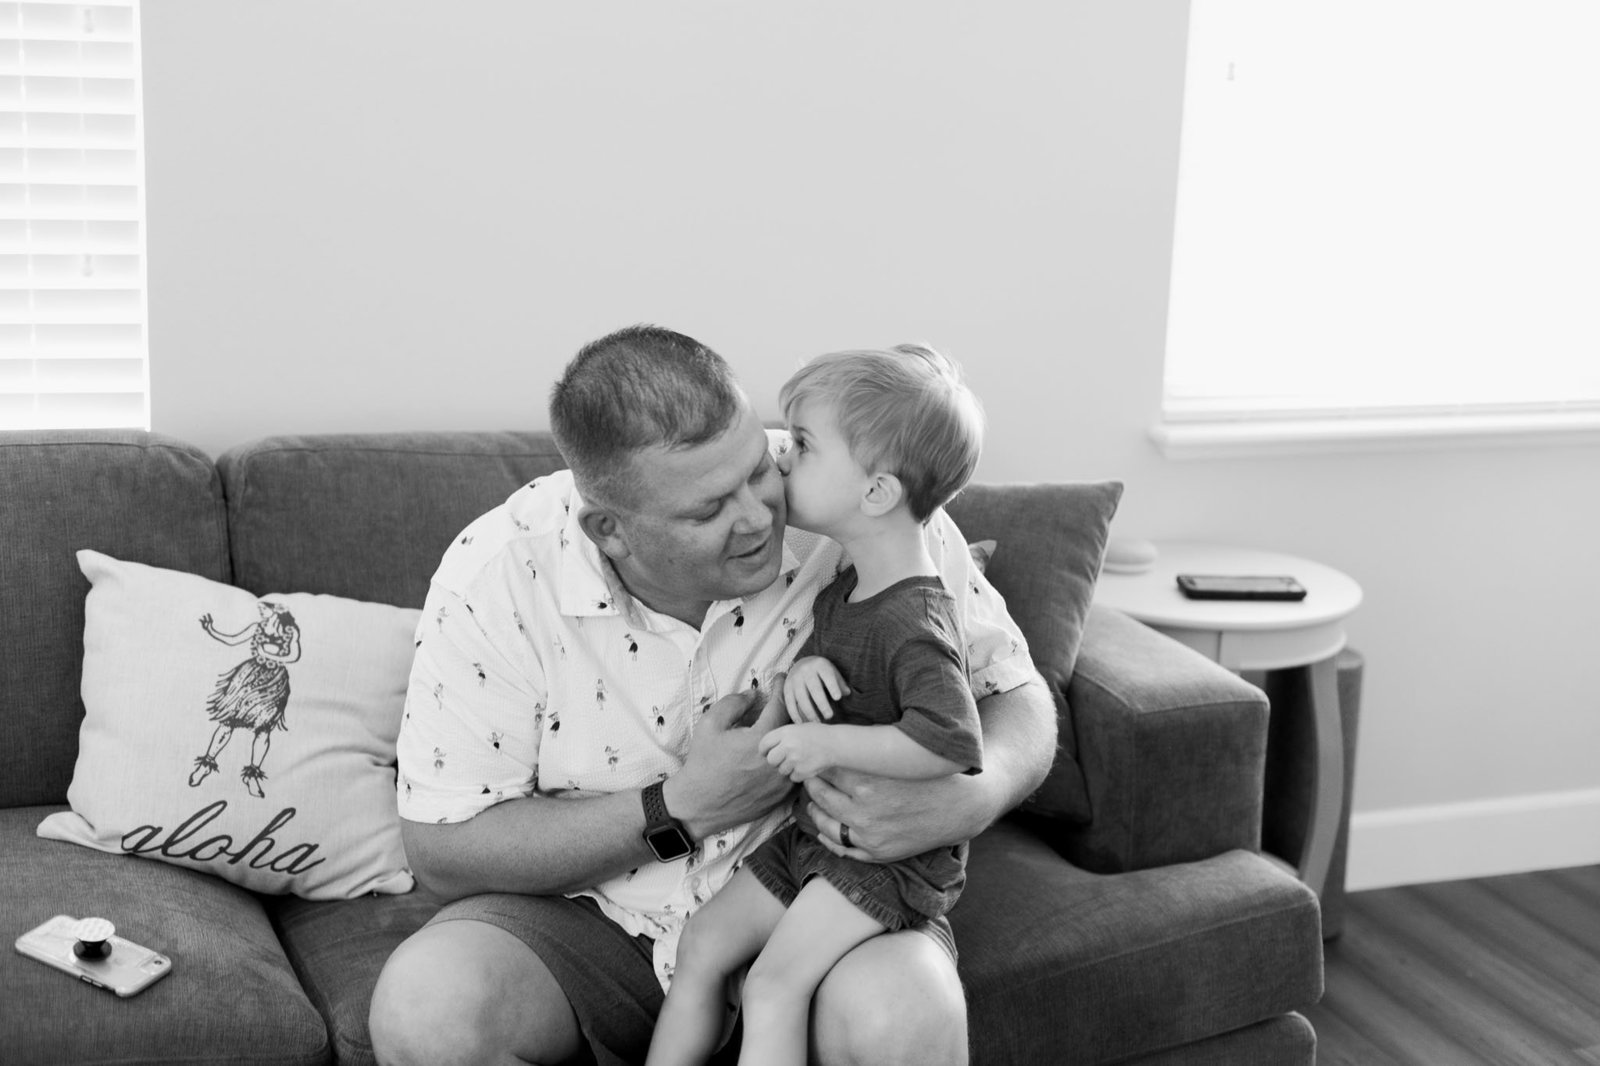 Oahu, Hawaii Lifestyle Photographer - Lifestyle Photography - Brooke Flanagan Photography - Father and Son in Black and White